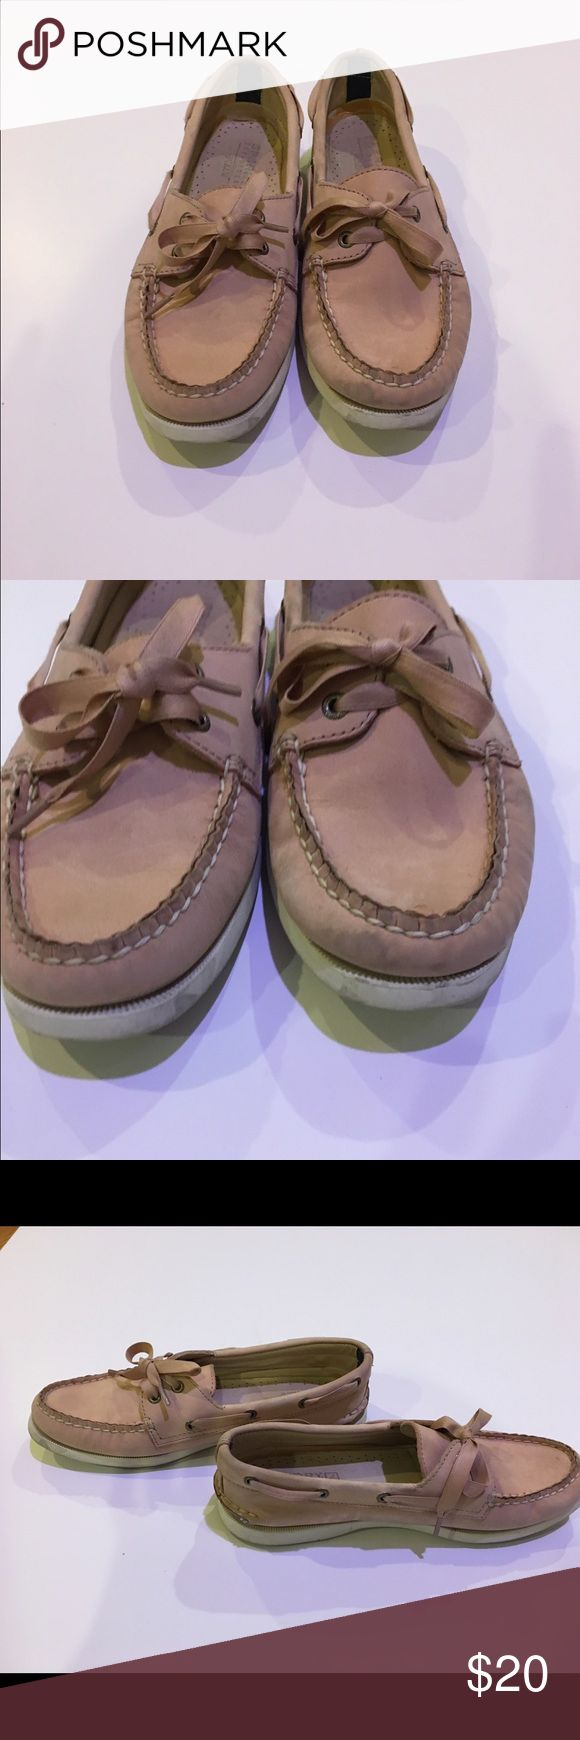 Sperry top sider for j.crew Pre loved. Have been worn a ton of times. Shows signs of wear with noticeable marks.  I have never tried to clean them so they might come out. Price reflects condition. Sperry Top-Sider Shoes Flats & Loafers